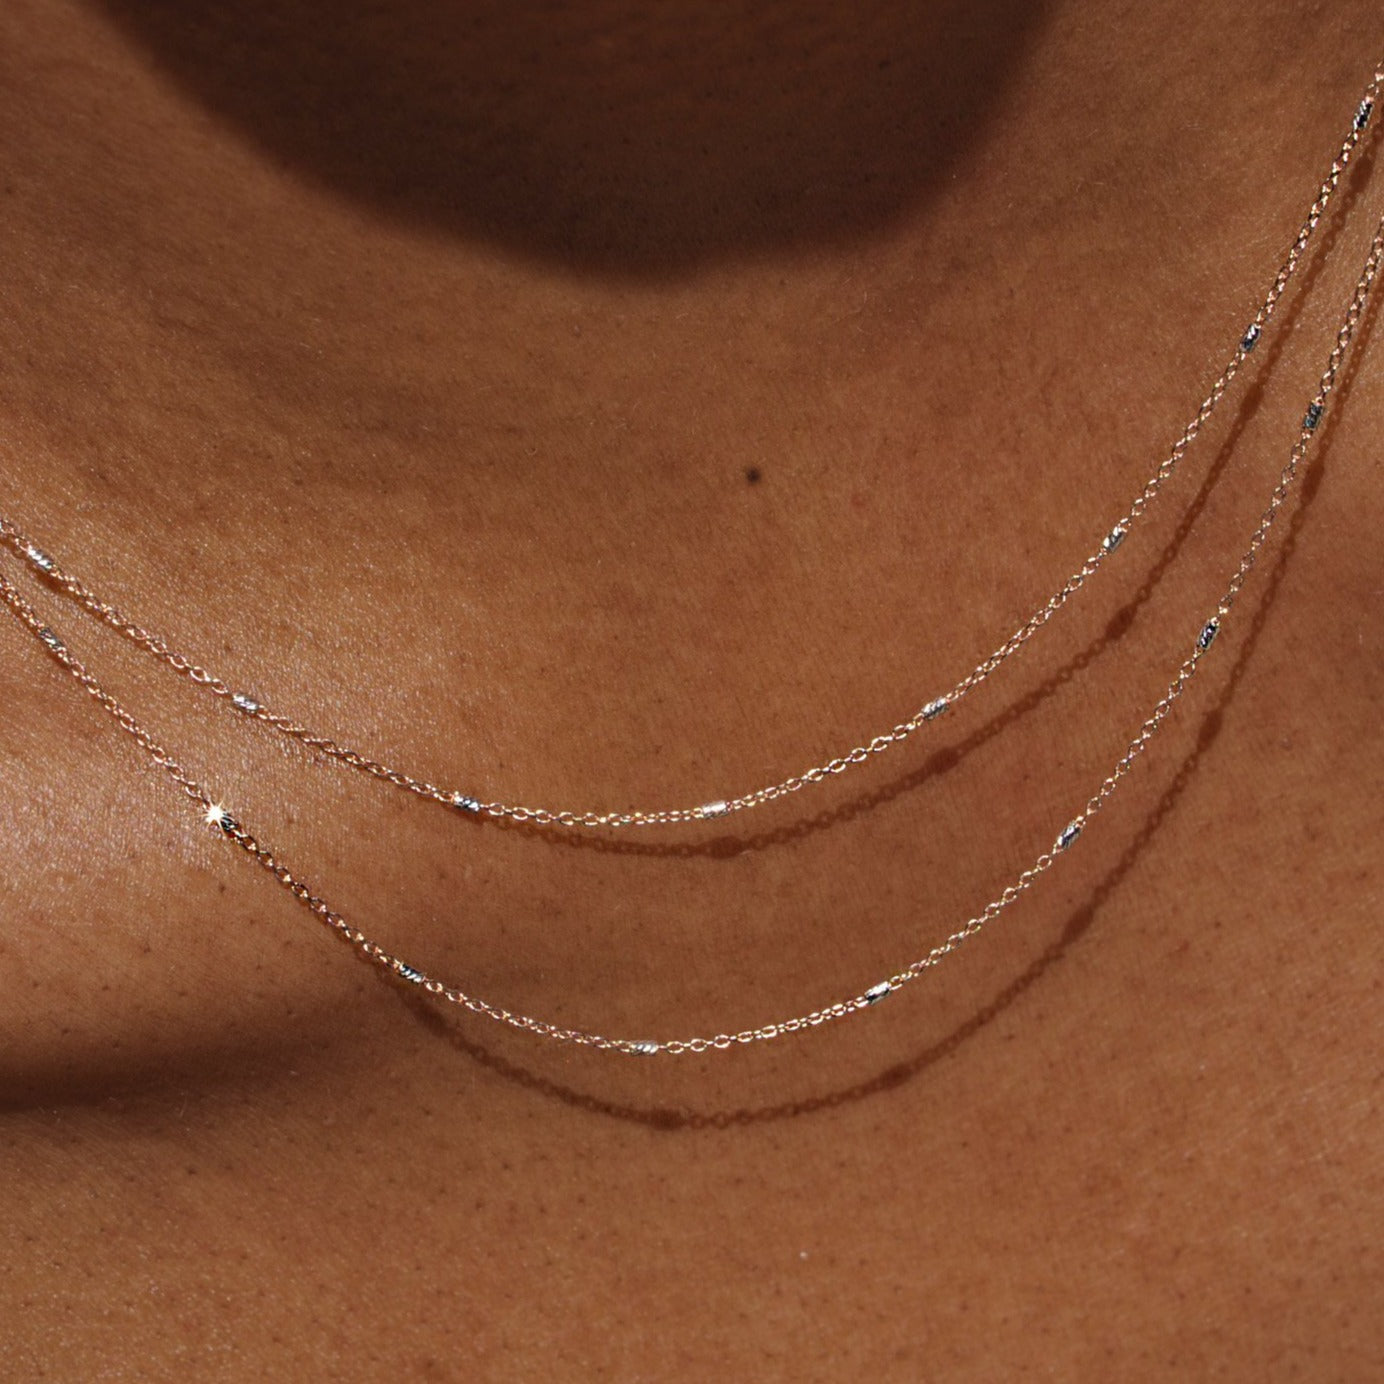 ROSE GOLD SPARKLE CHAIN